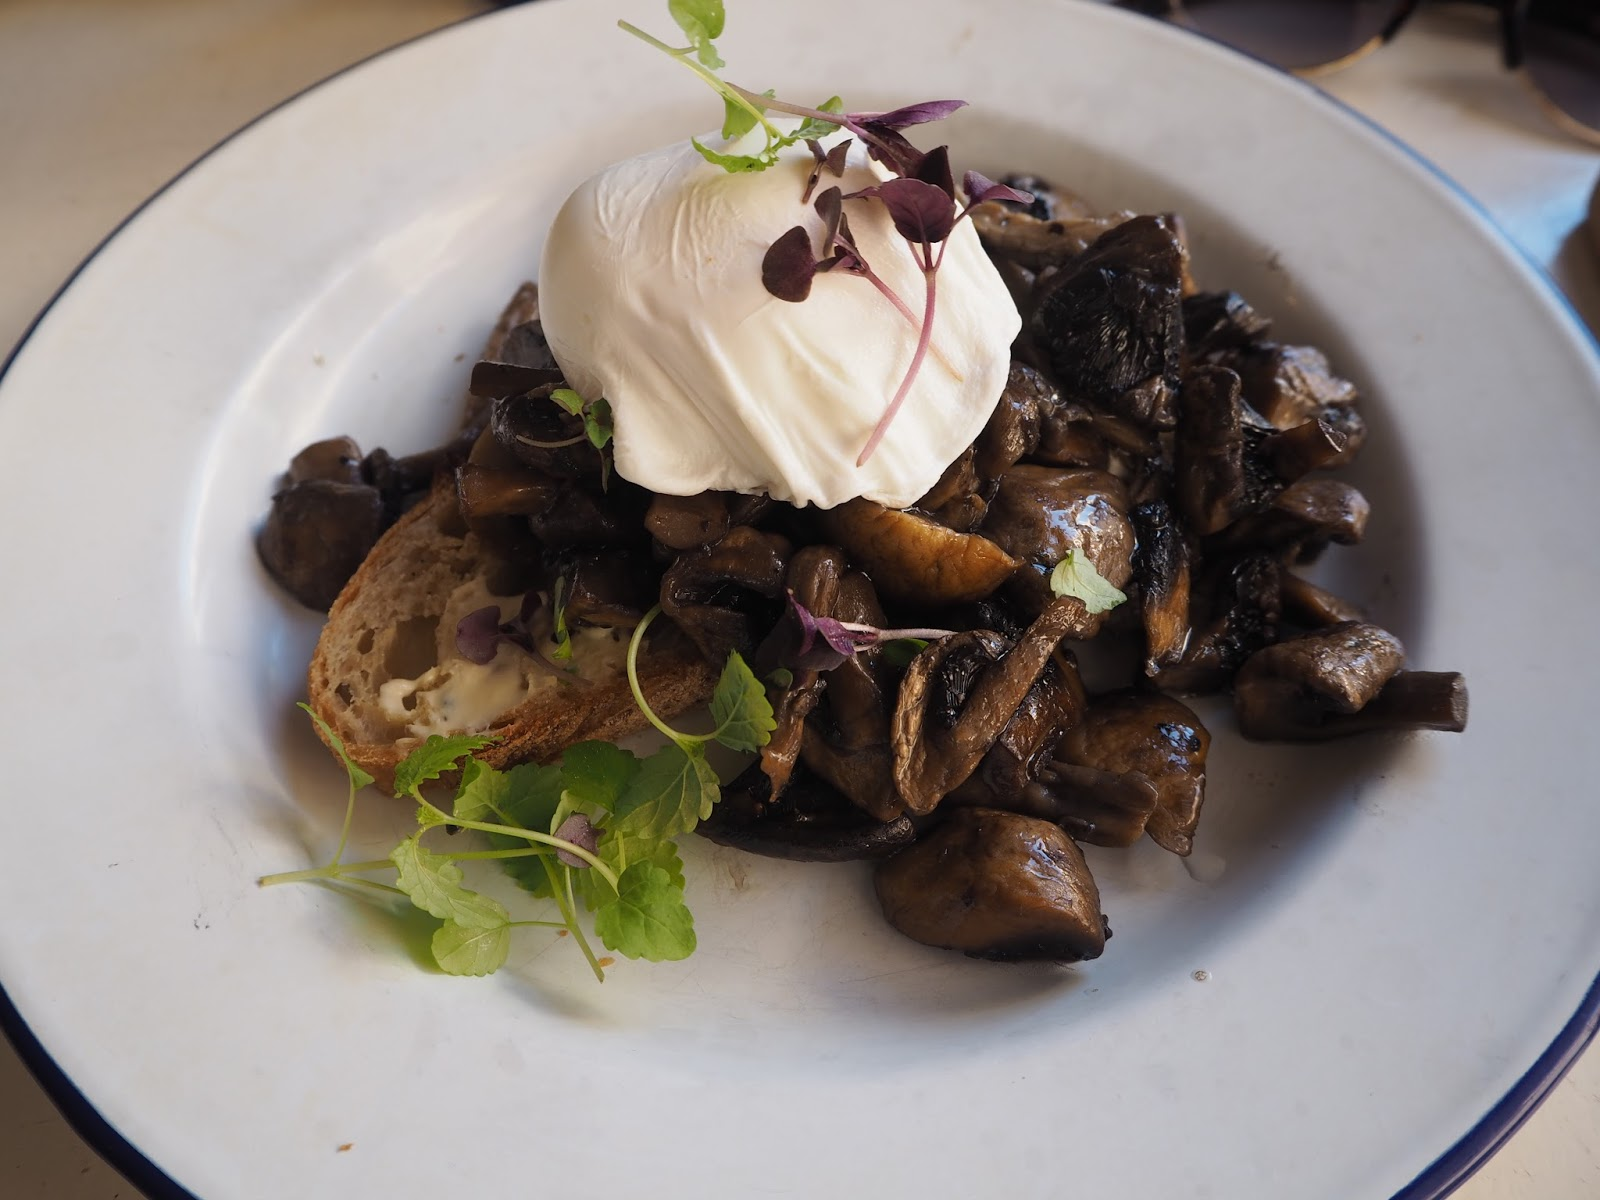 mushrooms and poached eggs on toast